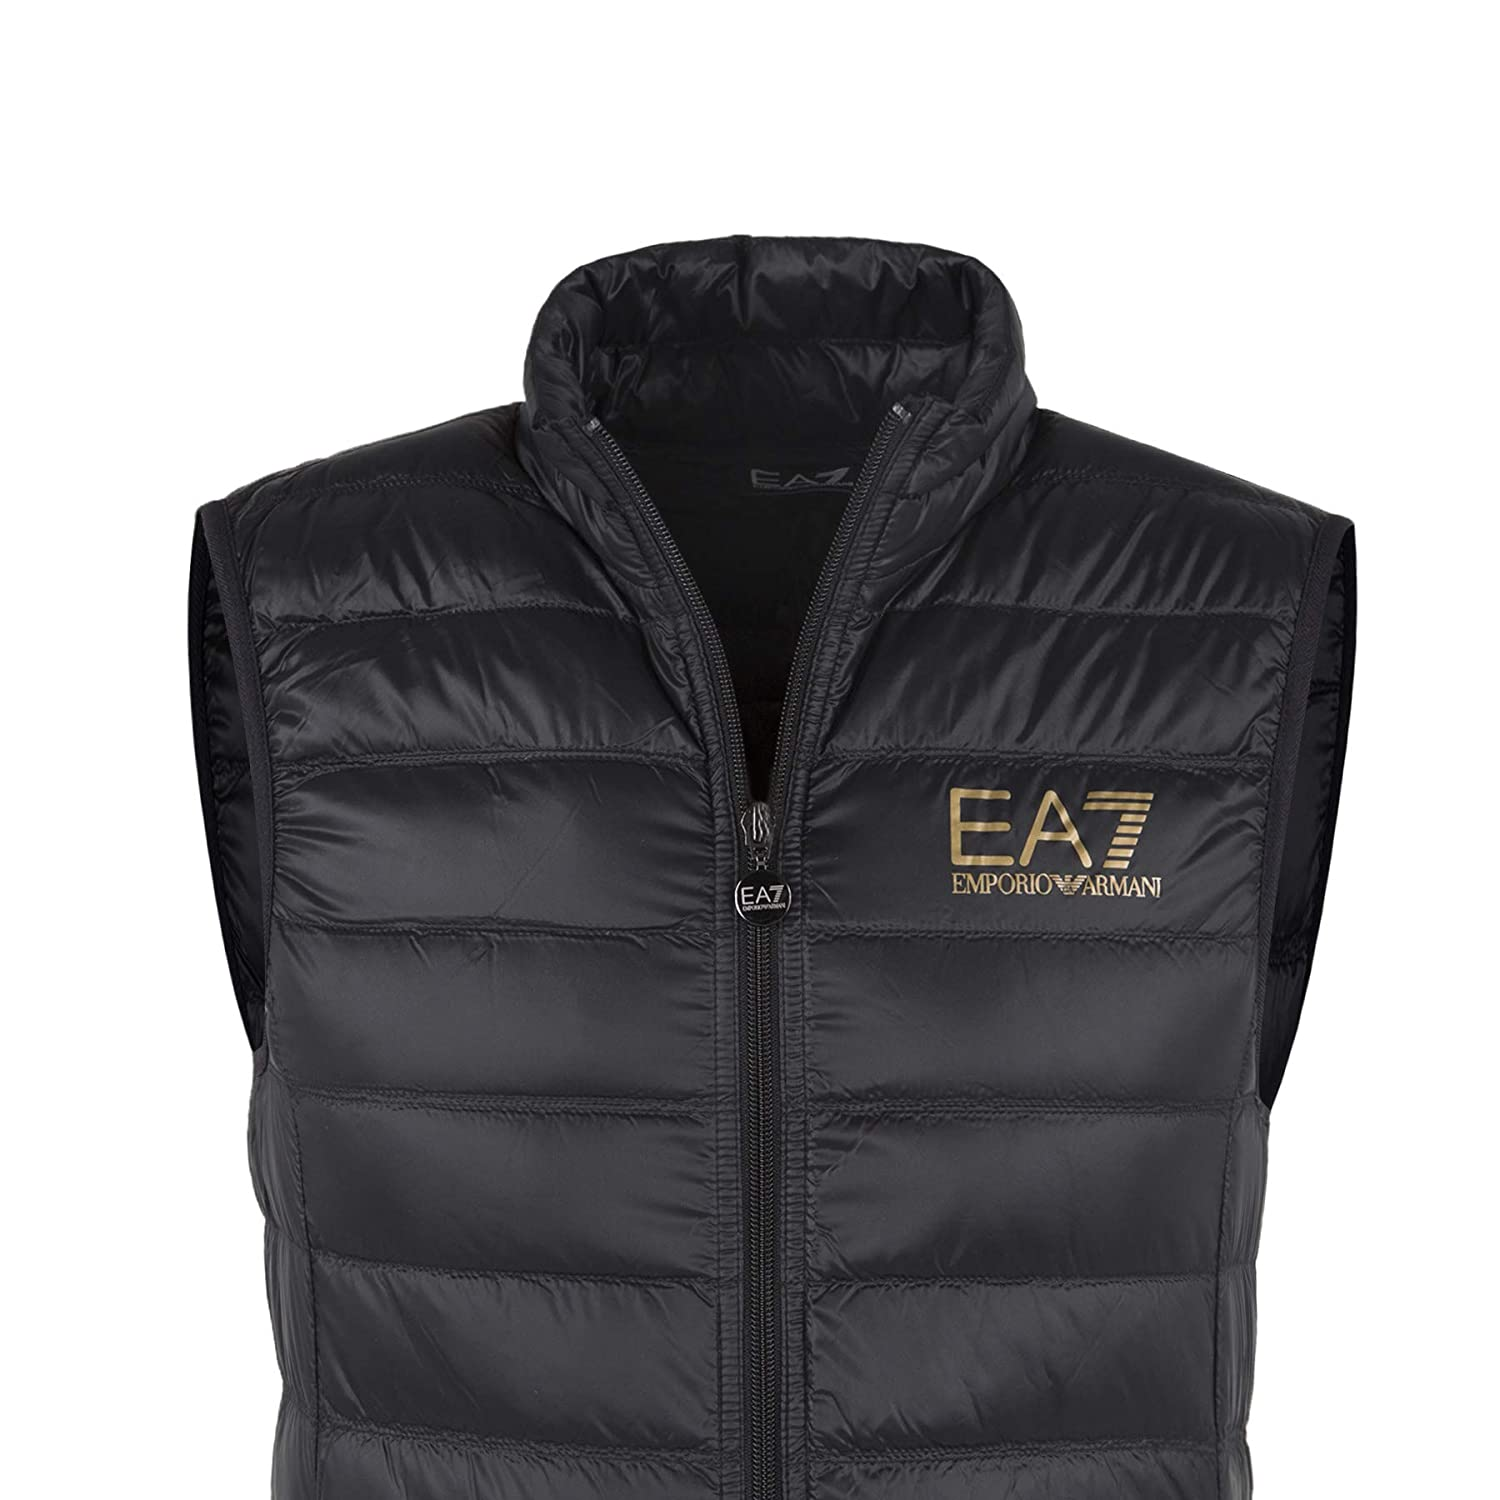 5cb0018177d1 Emporio Armani EA7 Ultra-Light Down Black Gillet  MainApps  Amazon.co.uk   Clothing